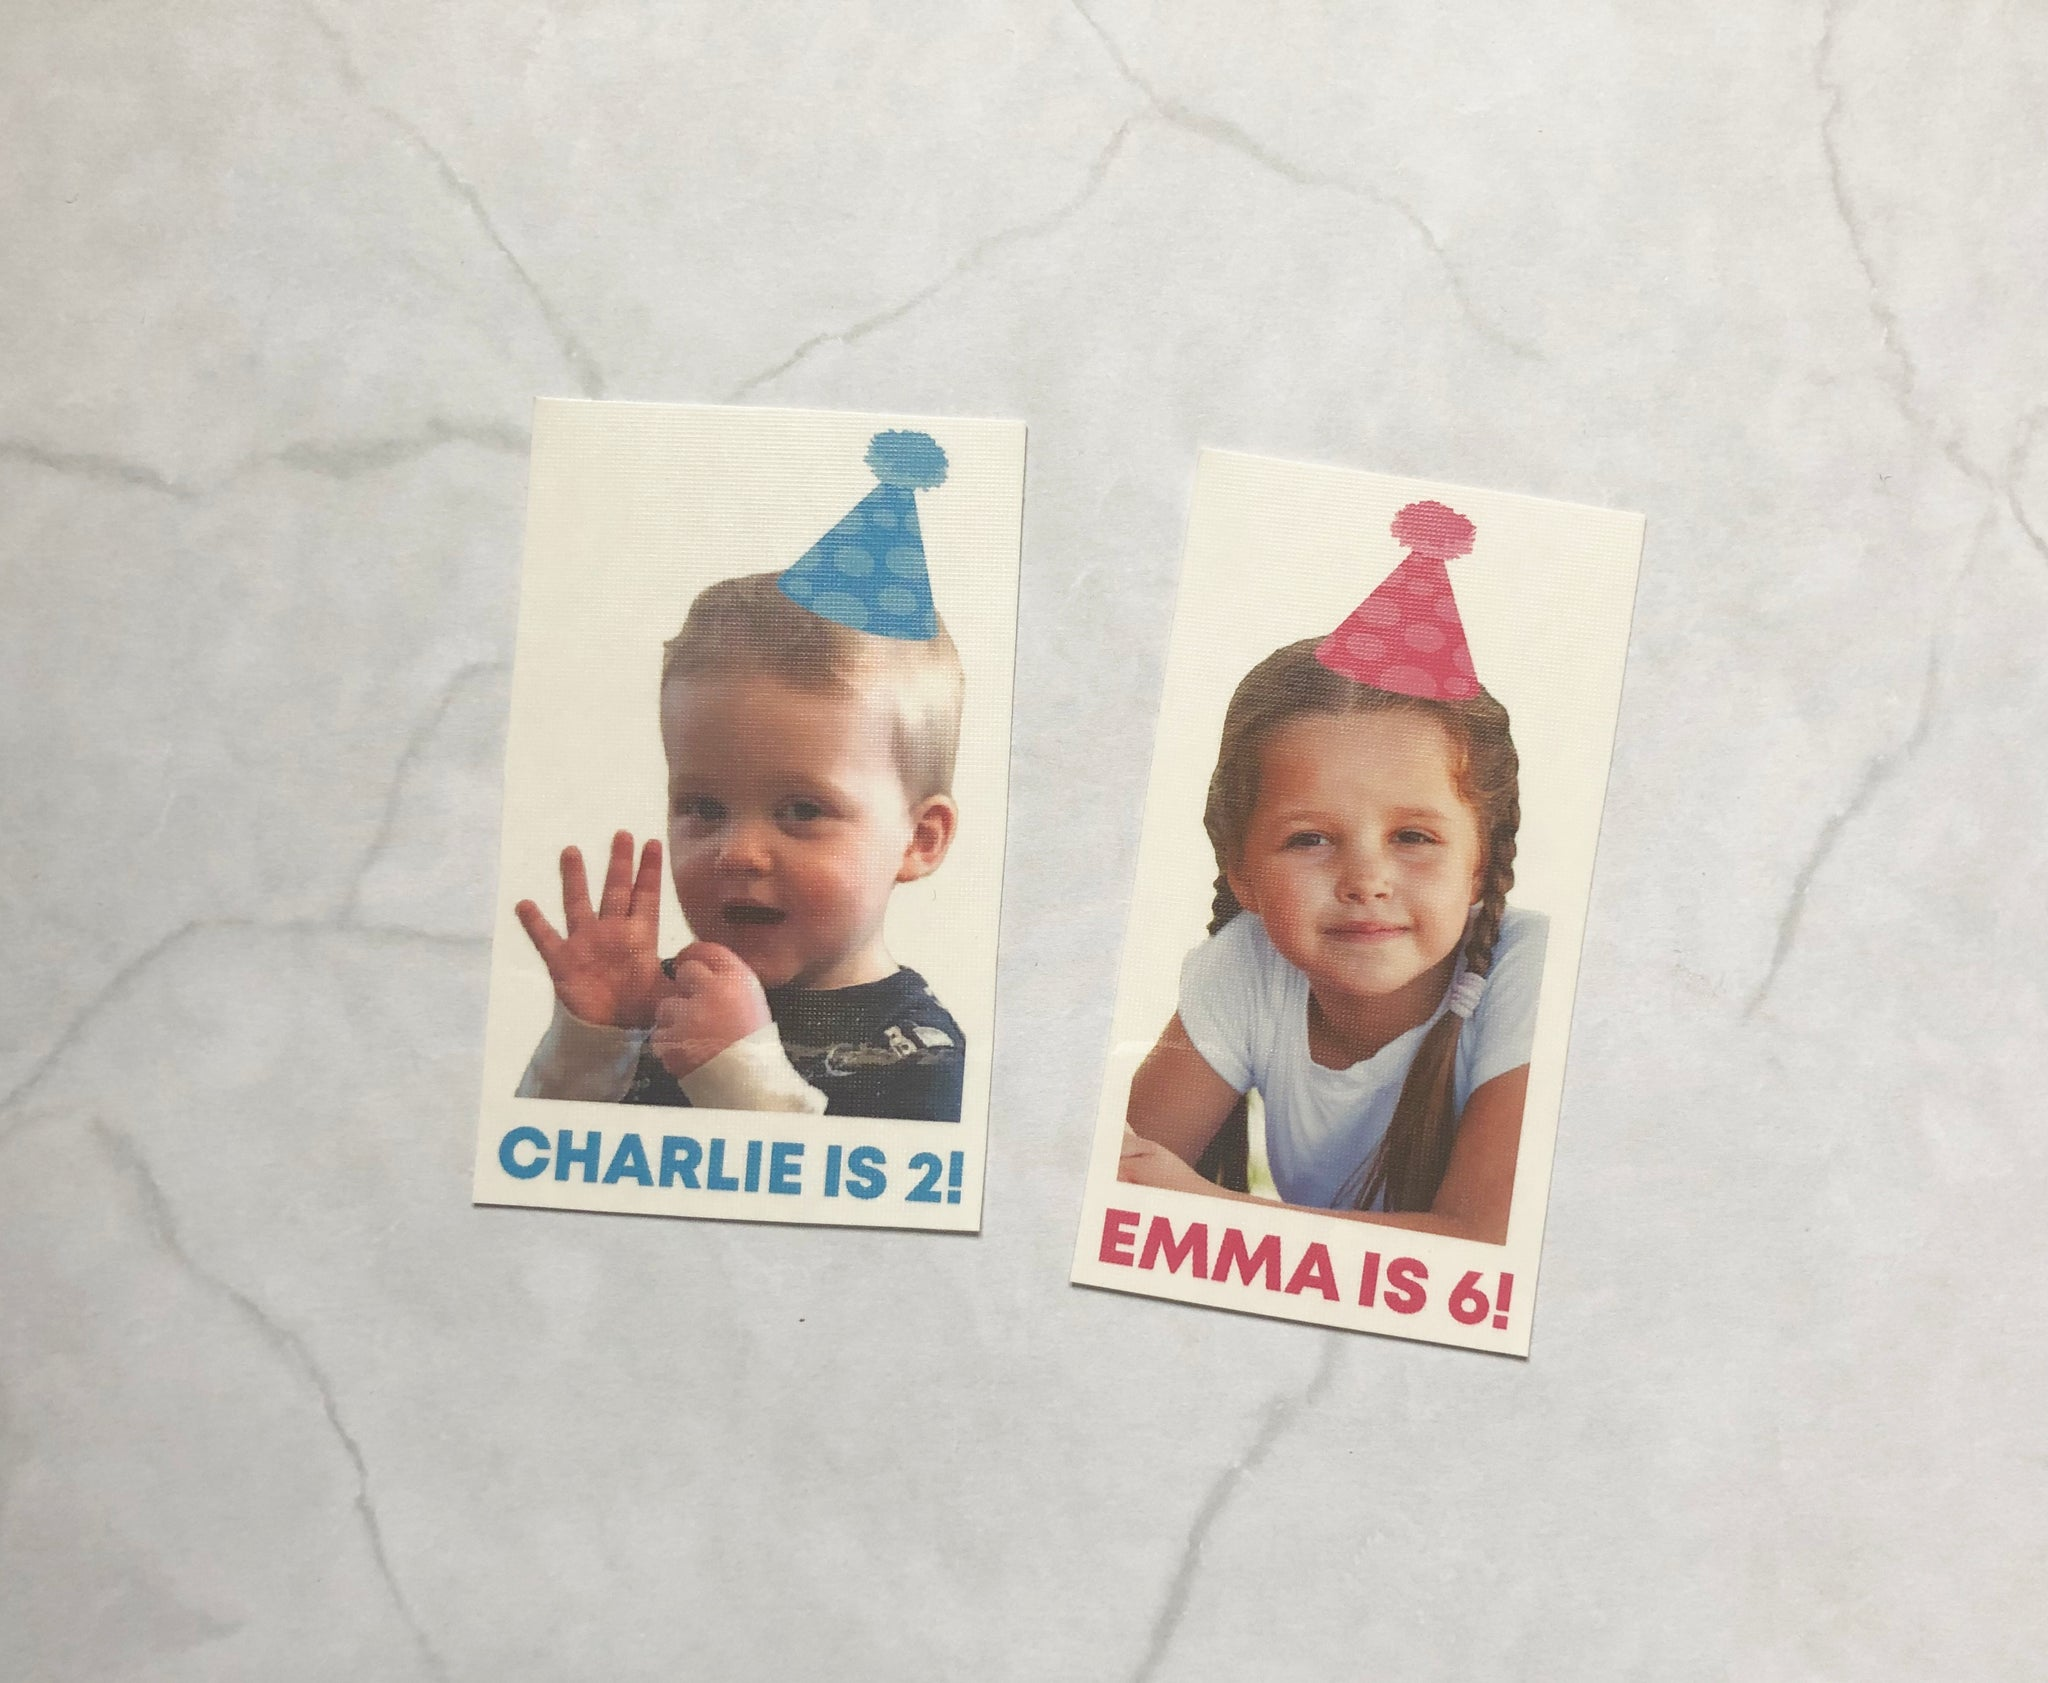 temporary tattoo // kids' birthday photo // custom